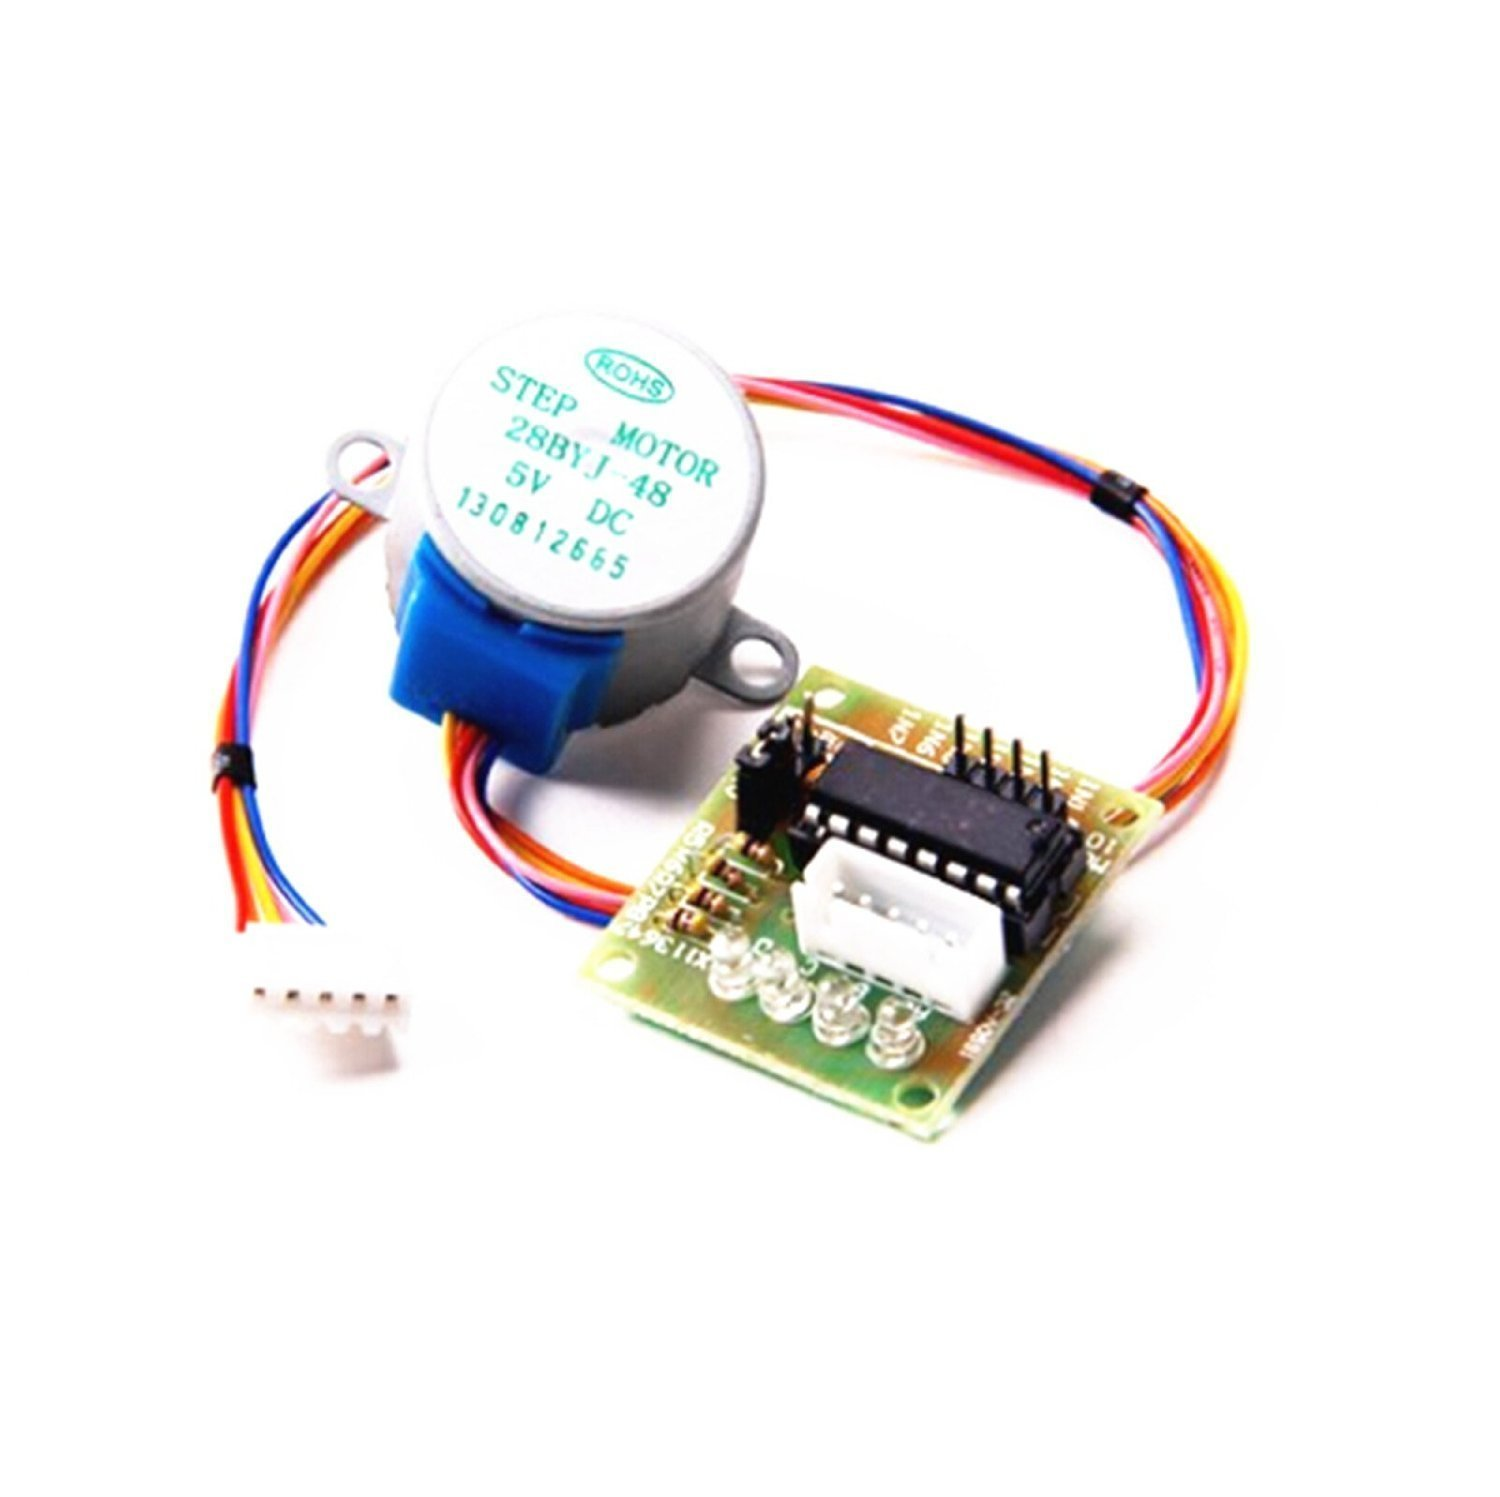 28byj 48 Stepper Motor With Uln2003 Driver And Arduino